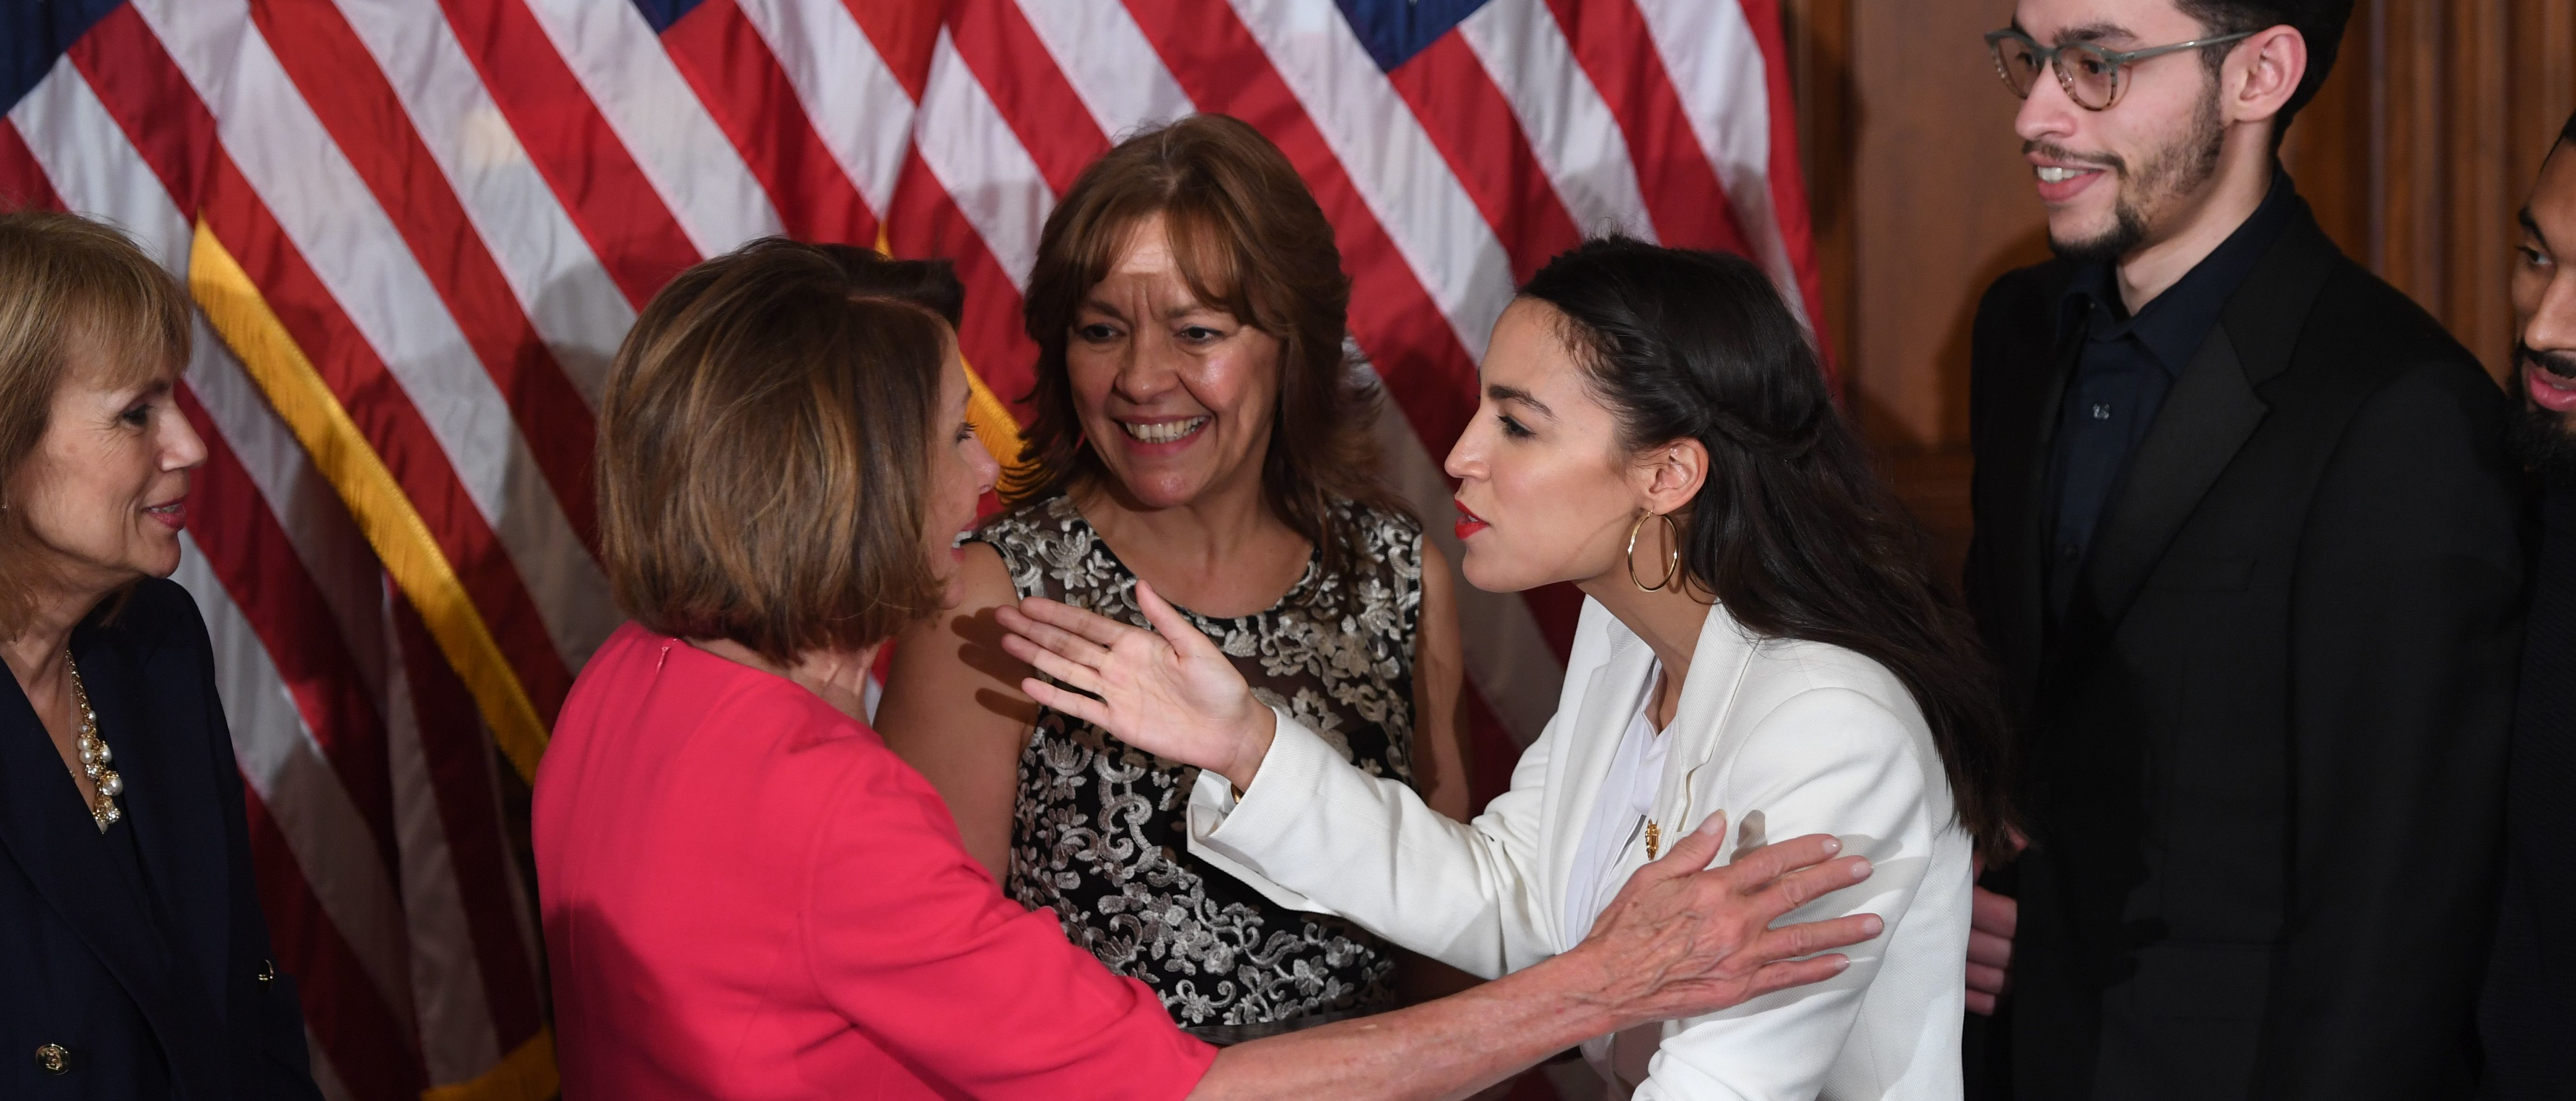 Speaker of the House Nancy Pelosi (L) greets Rep. Alexandria Ocasio-Cortez (R), D-NY, during the ceremonial swearing-in at the start of the 116th Congress at the US Capitol in Washington, DC, January 3, 2019. (Photo by SAUL LOEB / AFP / GETTY)